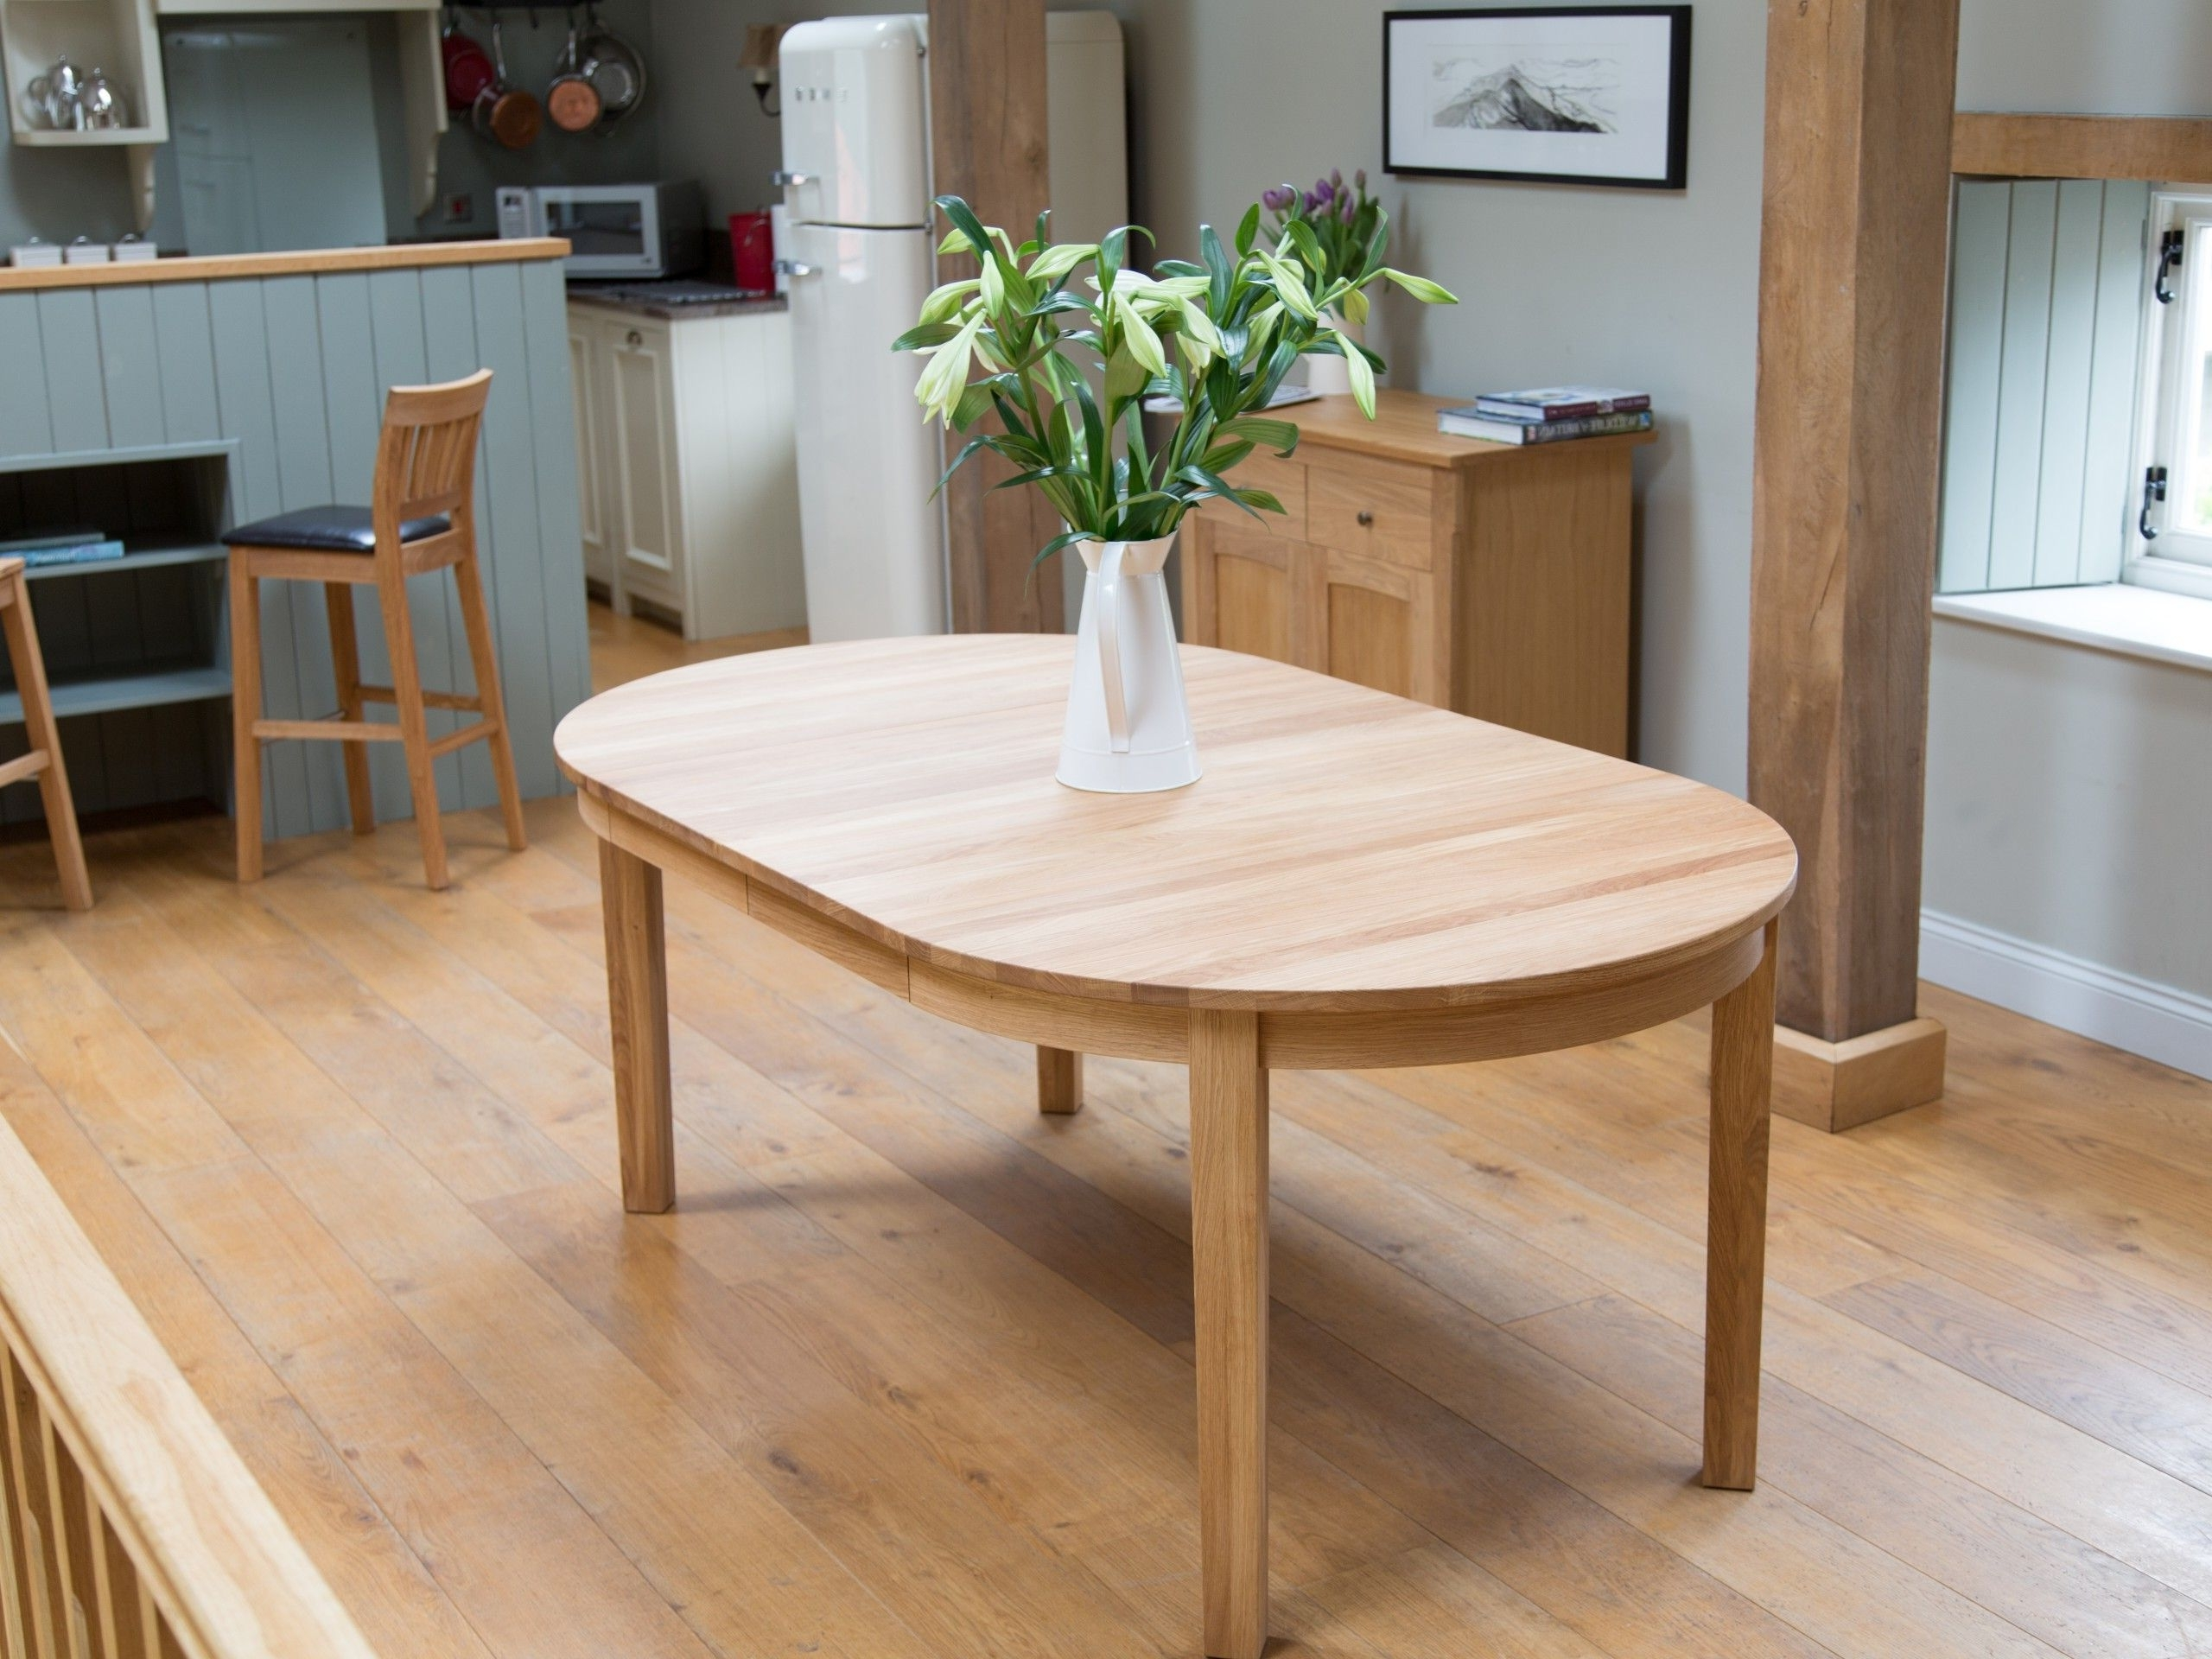 Favorite Round Oak Extendable Dining Tables And Chairs Intended For Round Extendable Dining Room Tables (View 7 of 25)